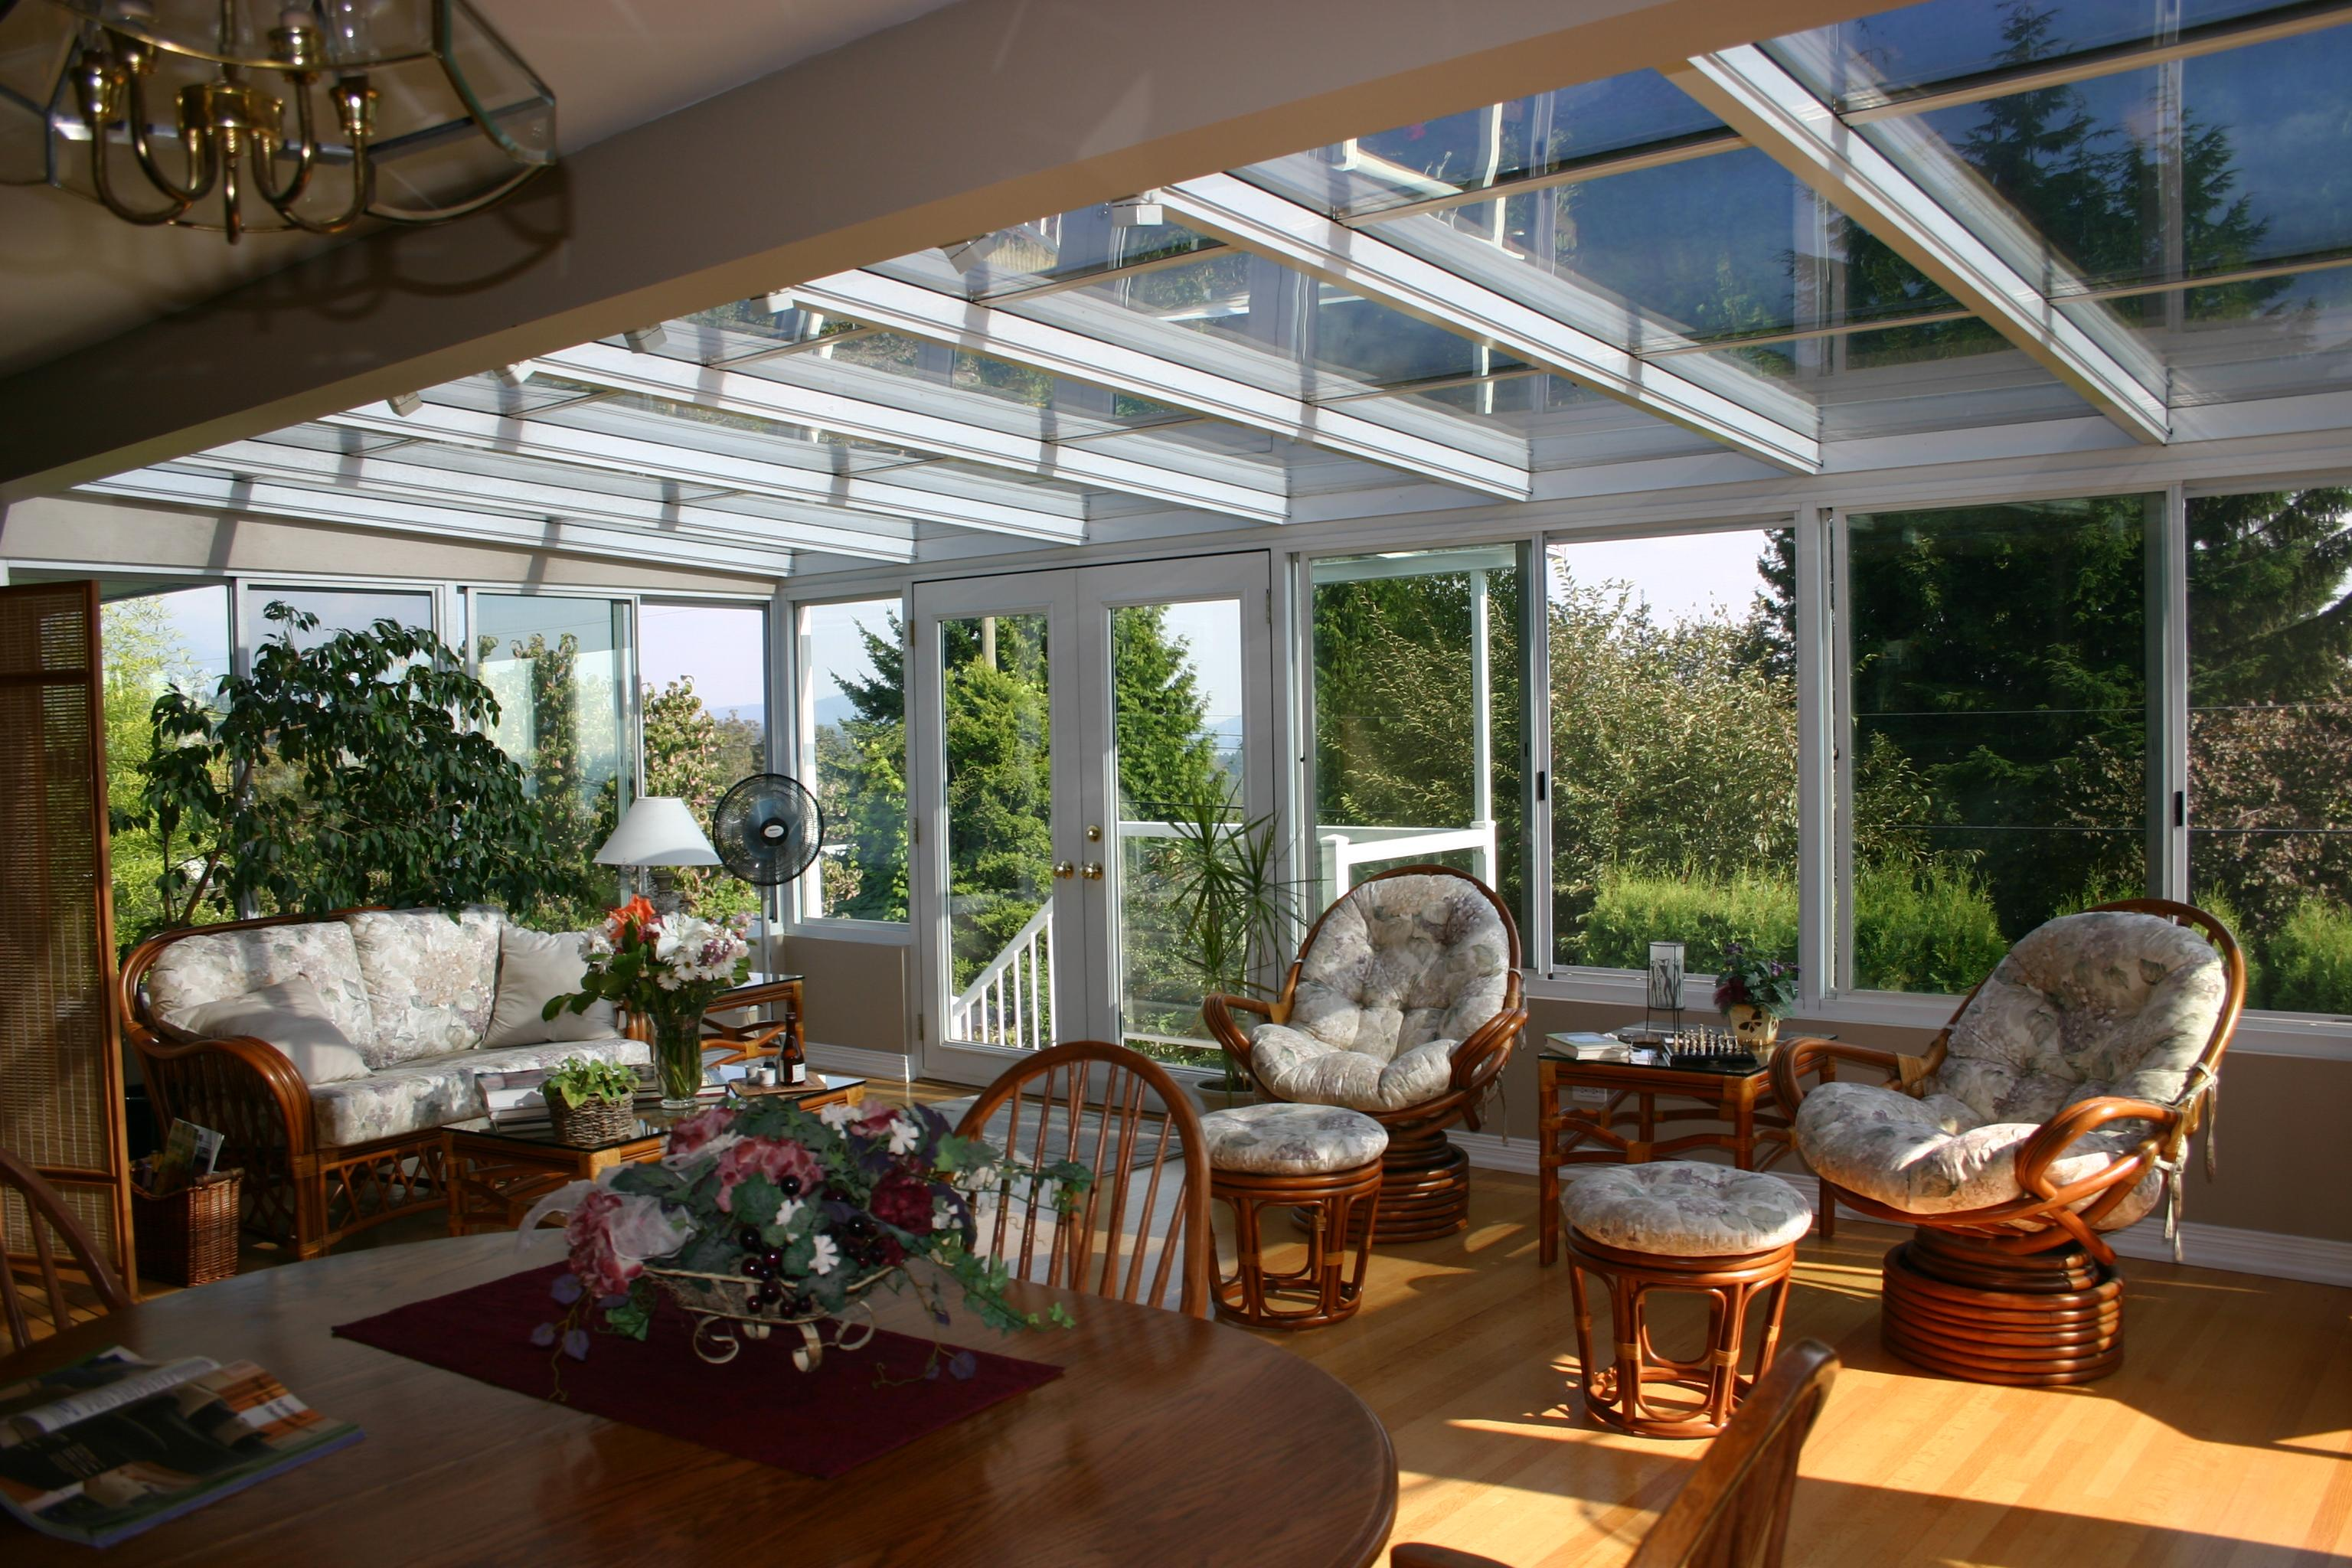 Four seasons sunrooms port coquitlam bc ourbis for 4 season sunroom